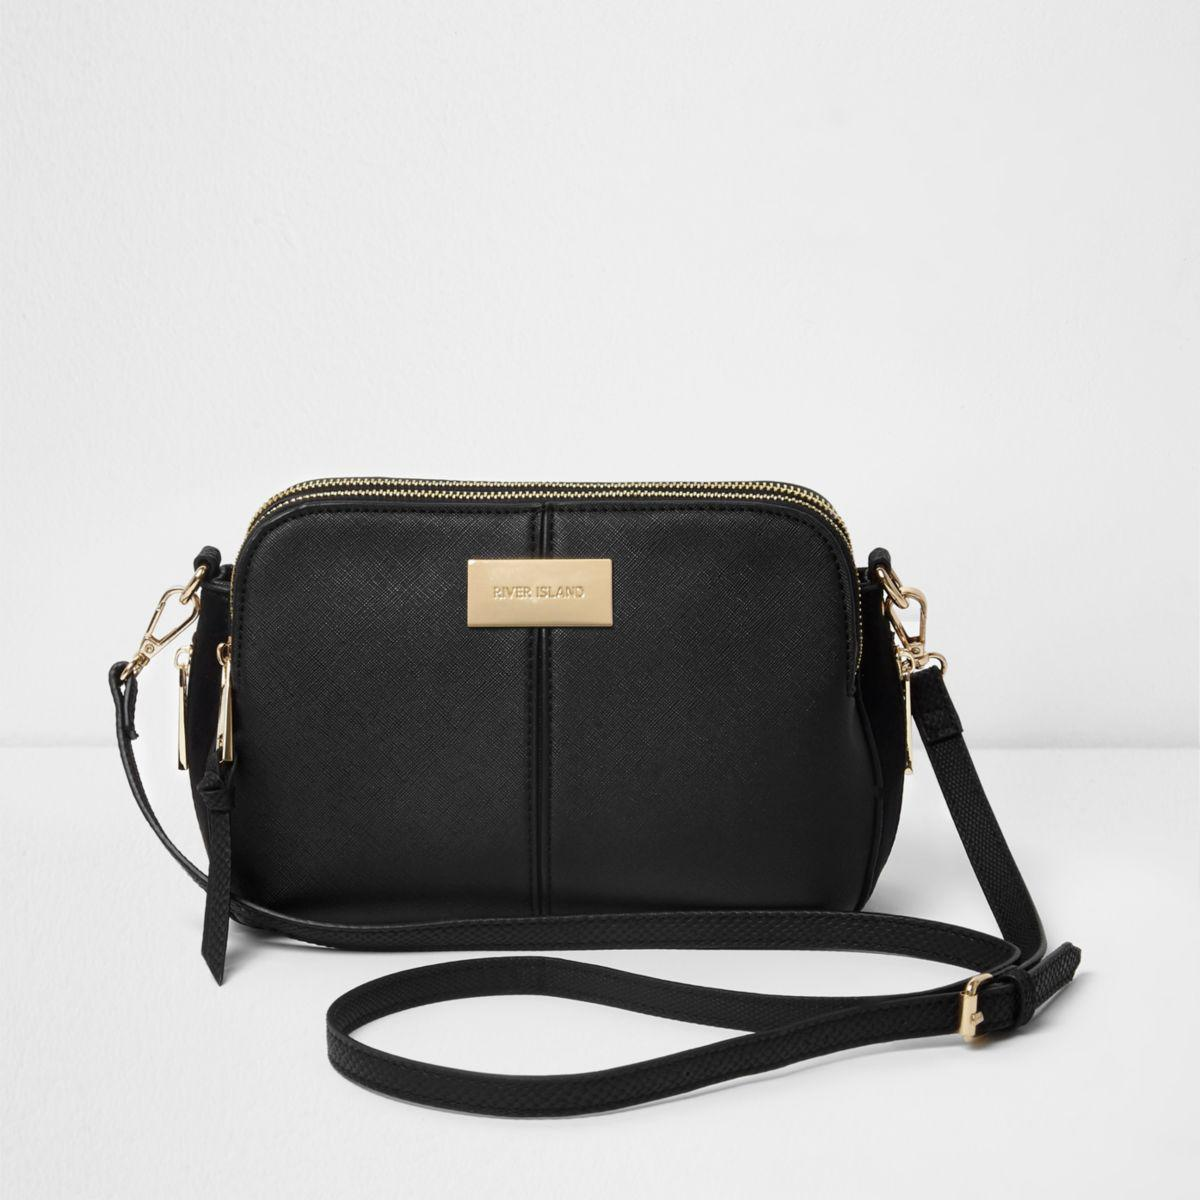 4bbae5ab0c62 Lyst - River Island Black Triple Compartment Cross Body Bag in Black